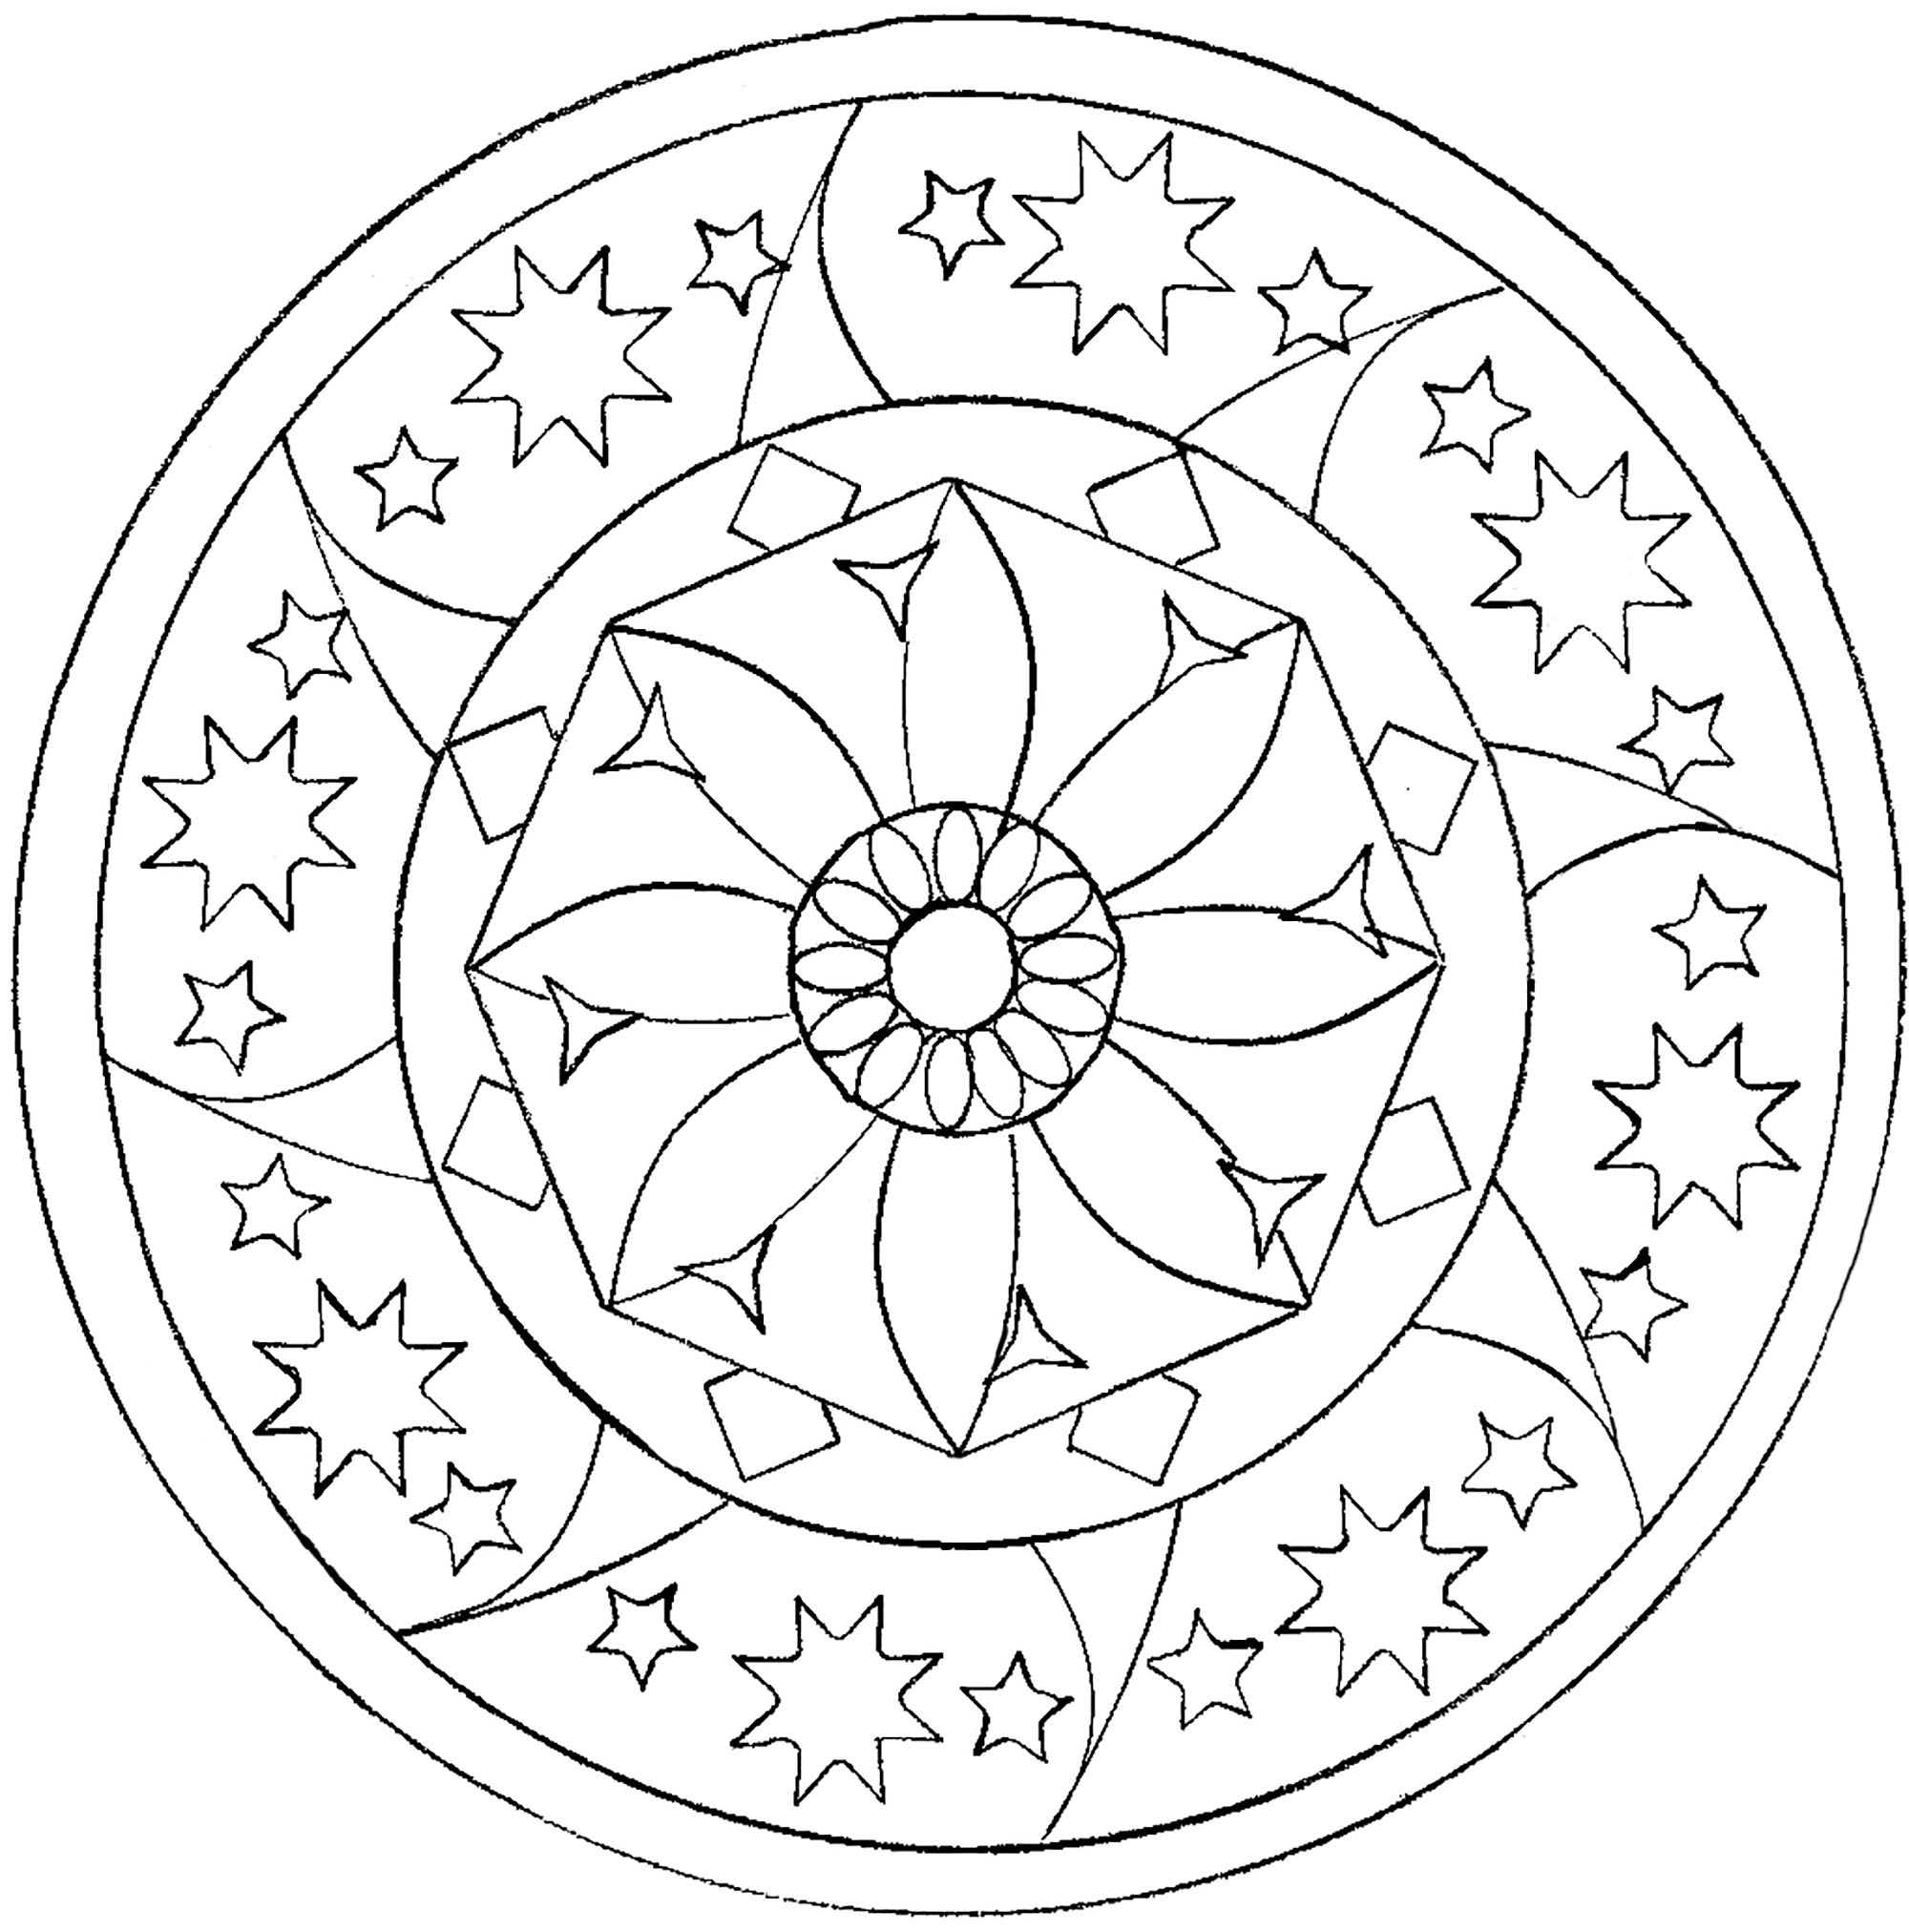 mandala etoiles coloriage mandalas coloriages pour enfants. Black Bedroom Furniture Sets. Home Design Ideas